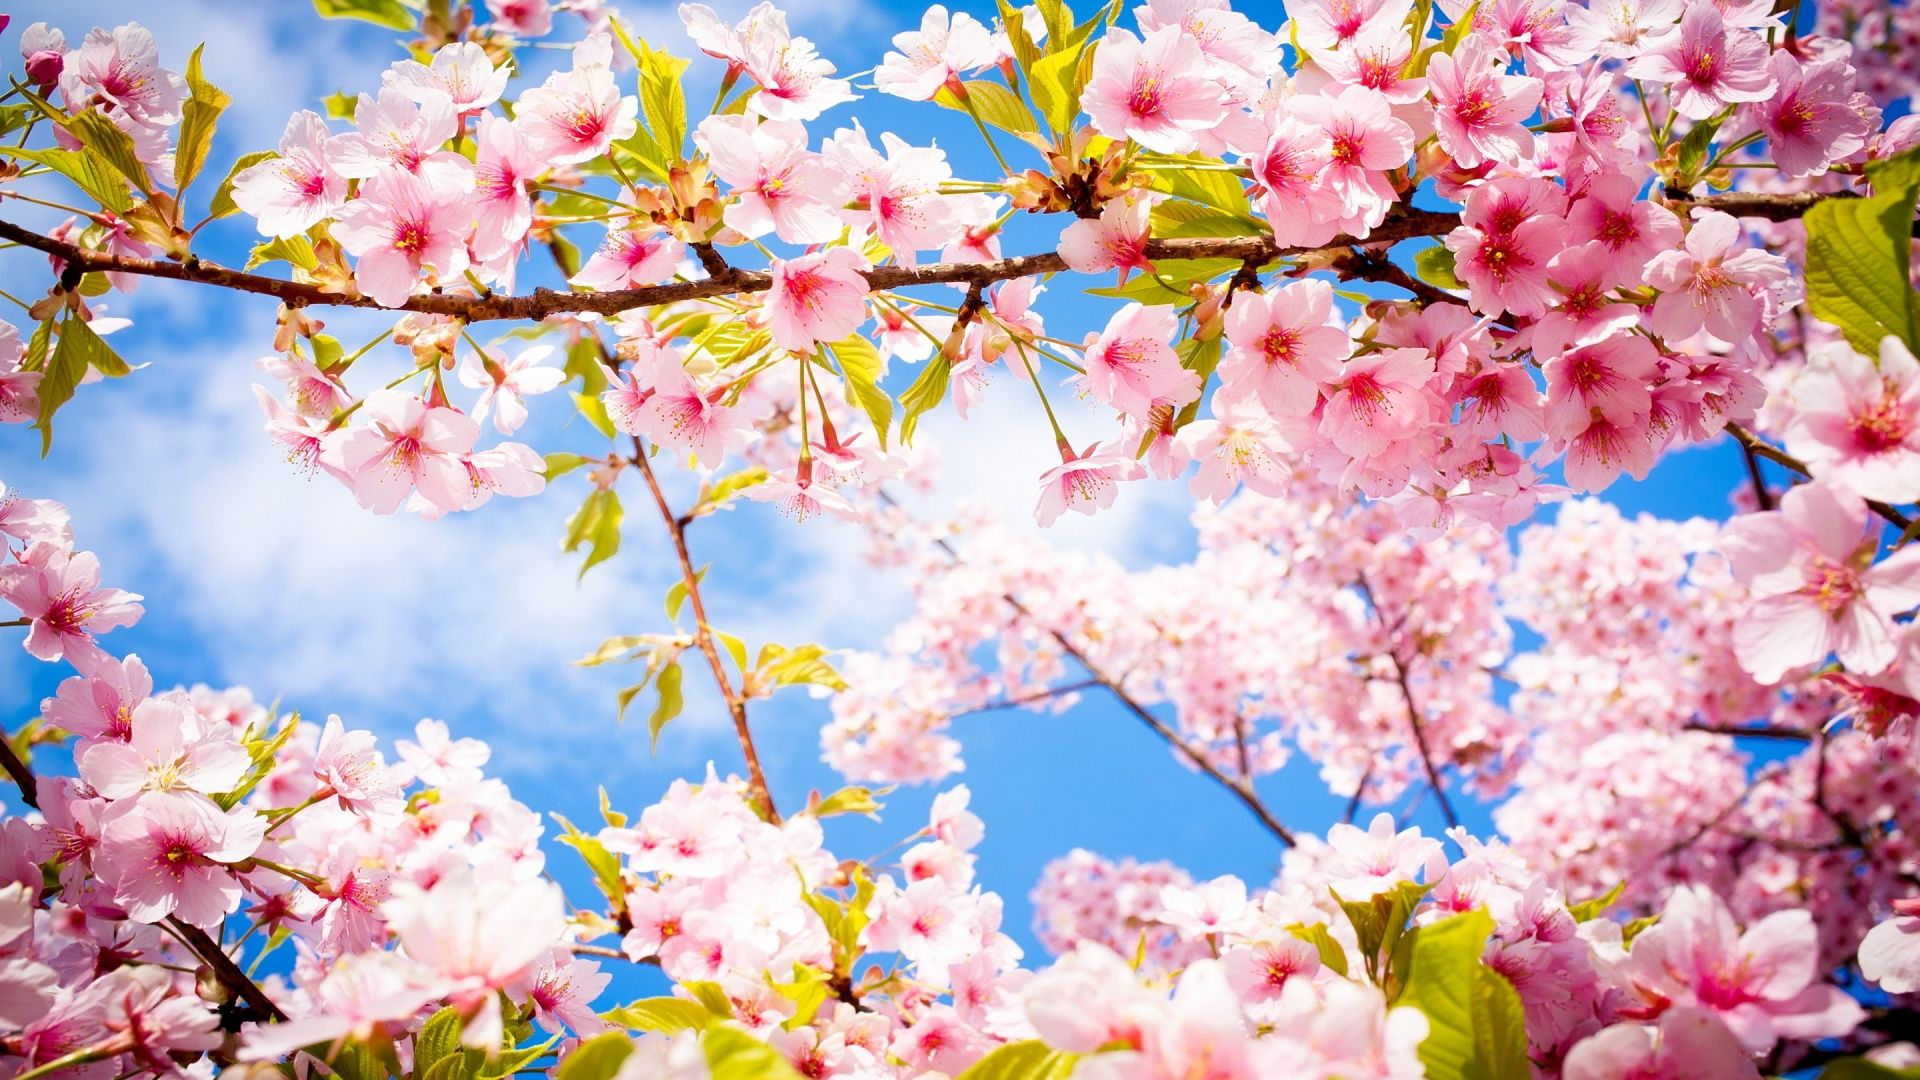 Wallpapers Cherry Blossom Spring Wallpaper Cherry Blossom Hd Wallpapers Things To Wear